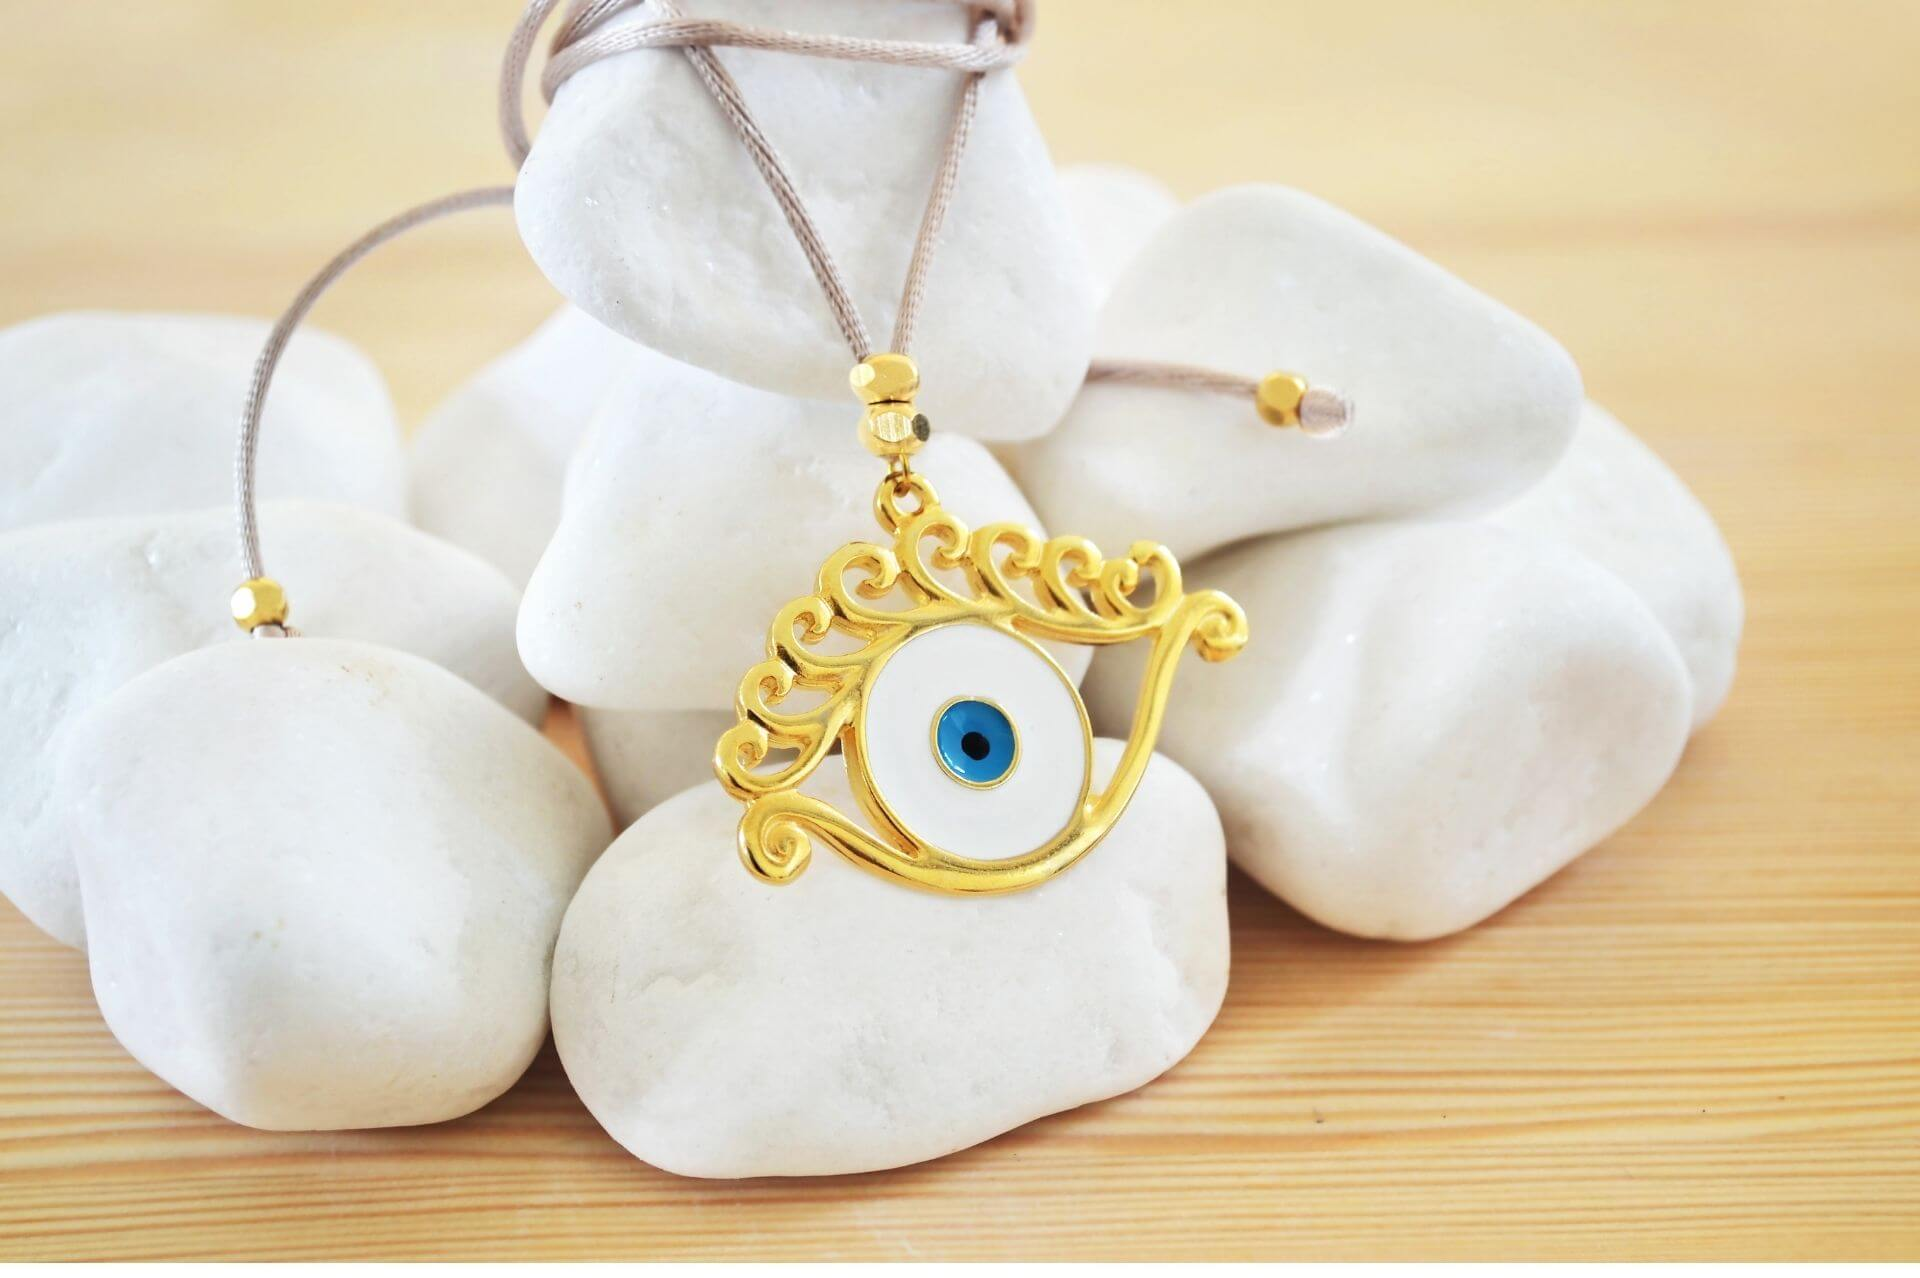 popular-jewelry-symbols-and-meanings-guide